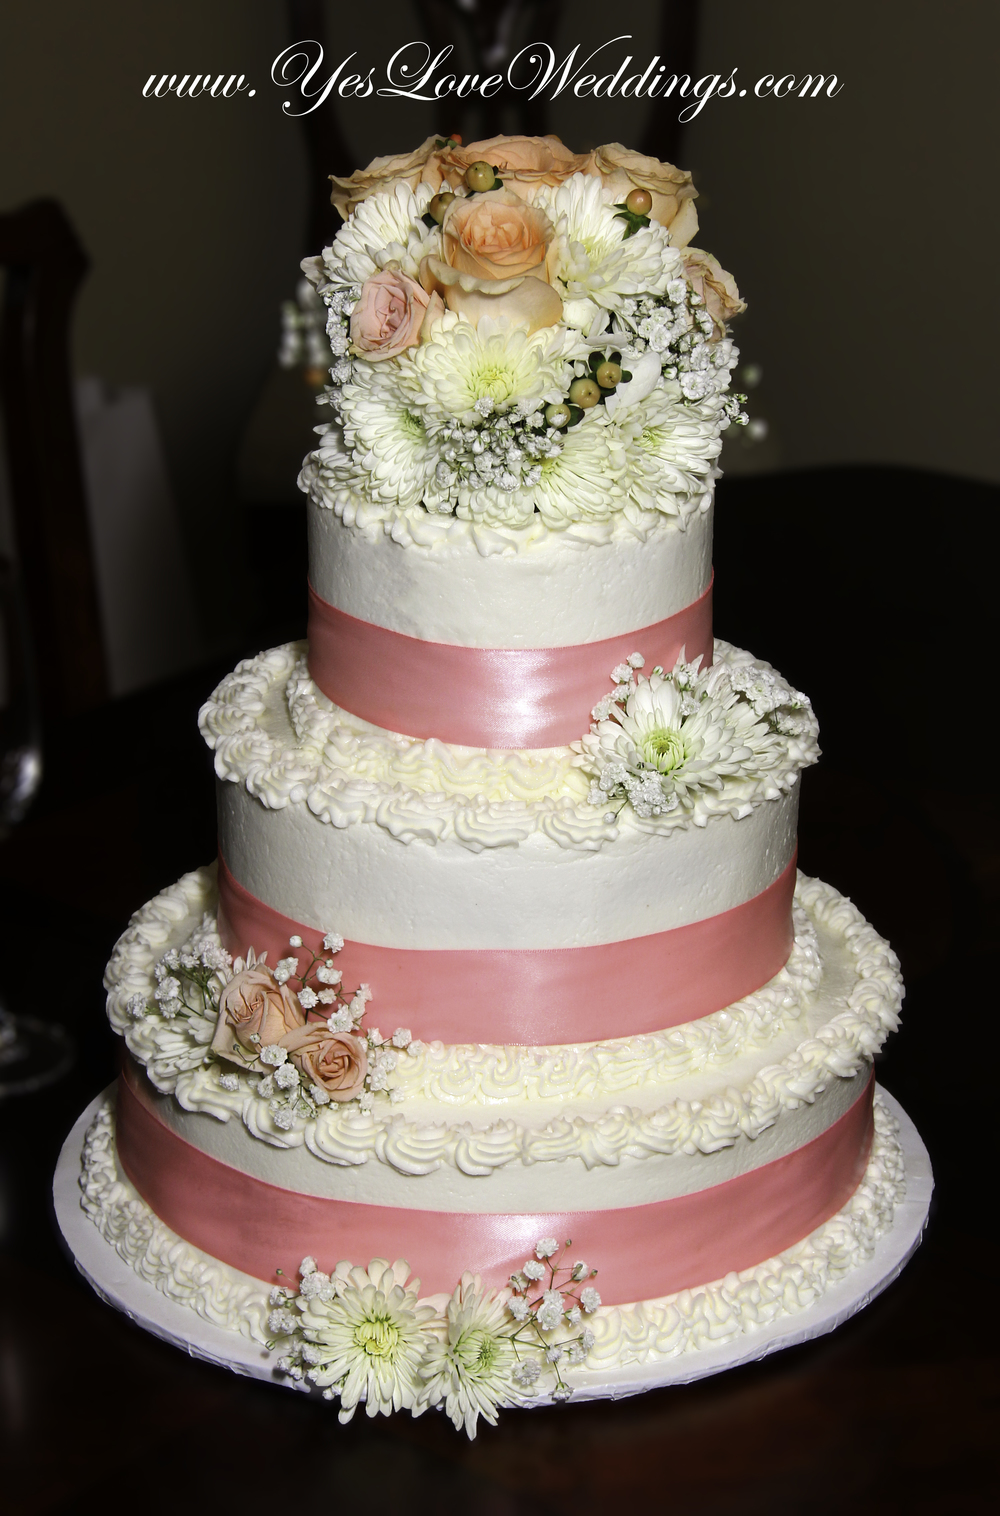 Pink three tier wedding cake with roses